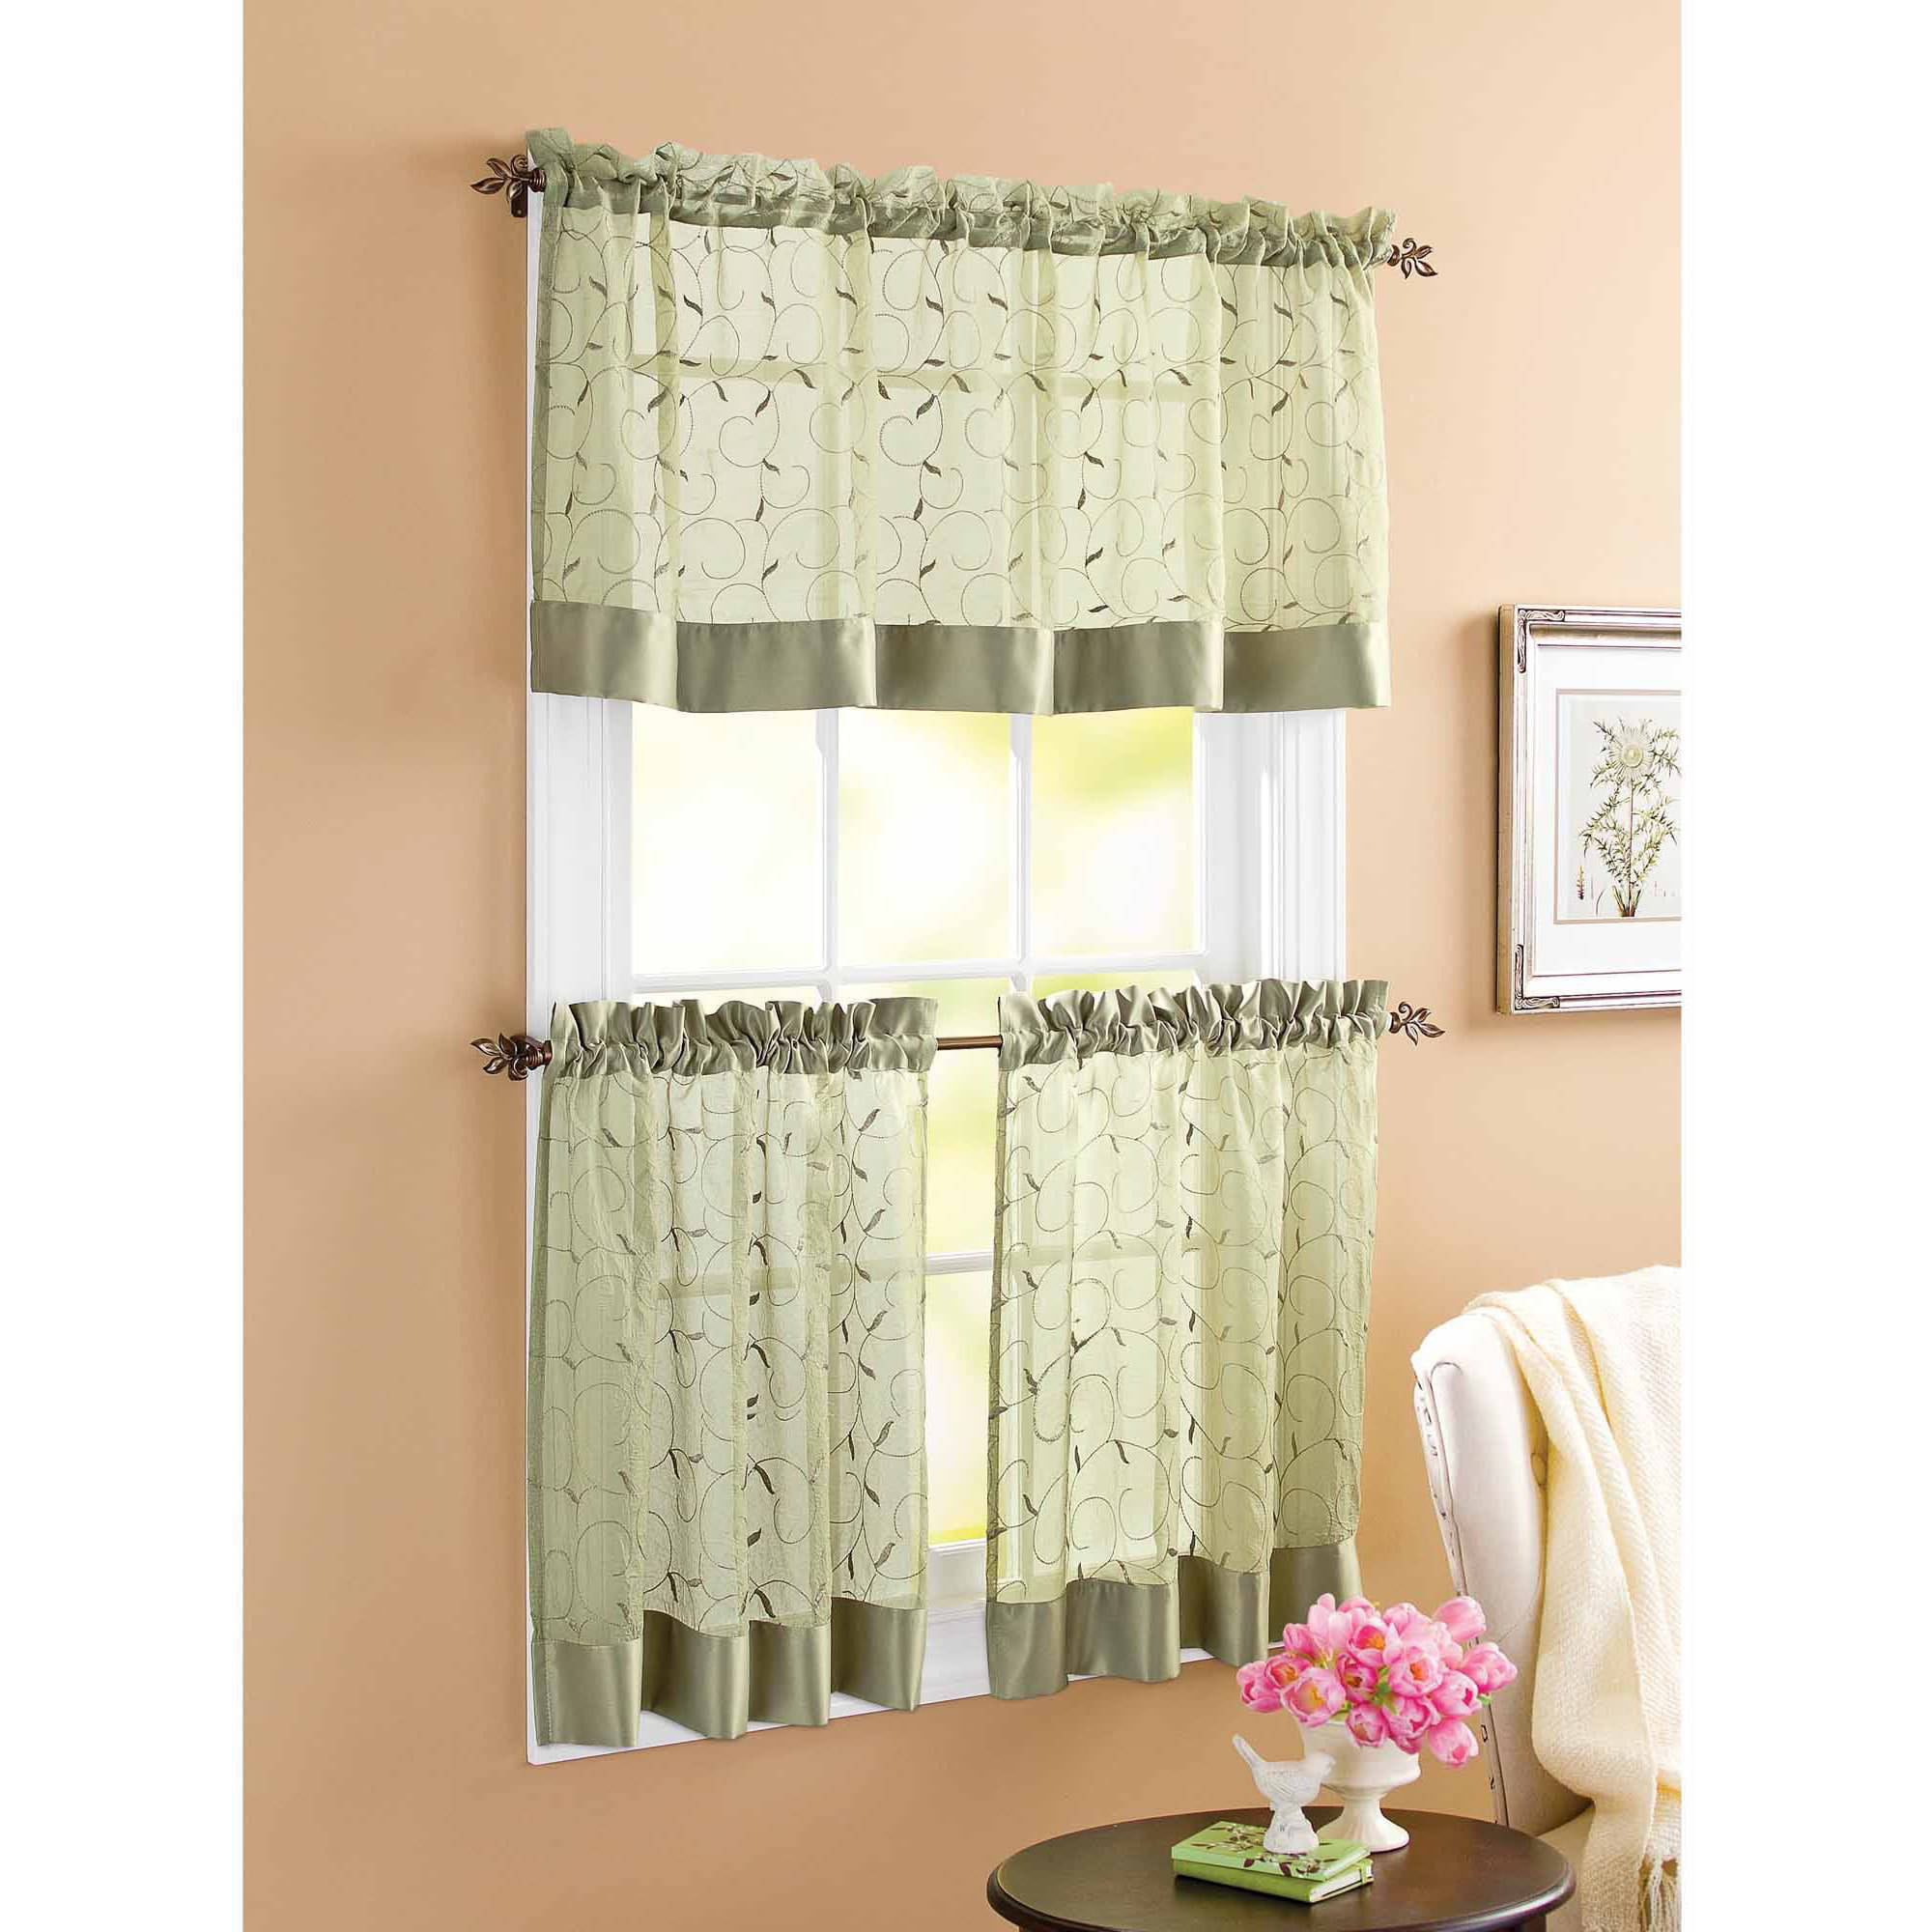 Garden To Kitchen Better Homes And Gardens Linen Leaf 3 Piece Kitchen Curtain Set